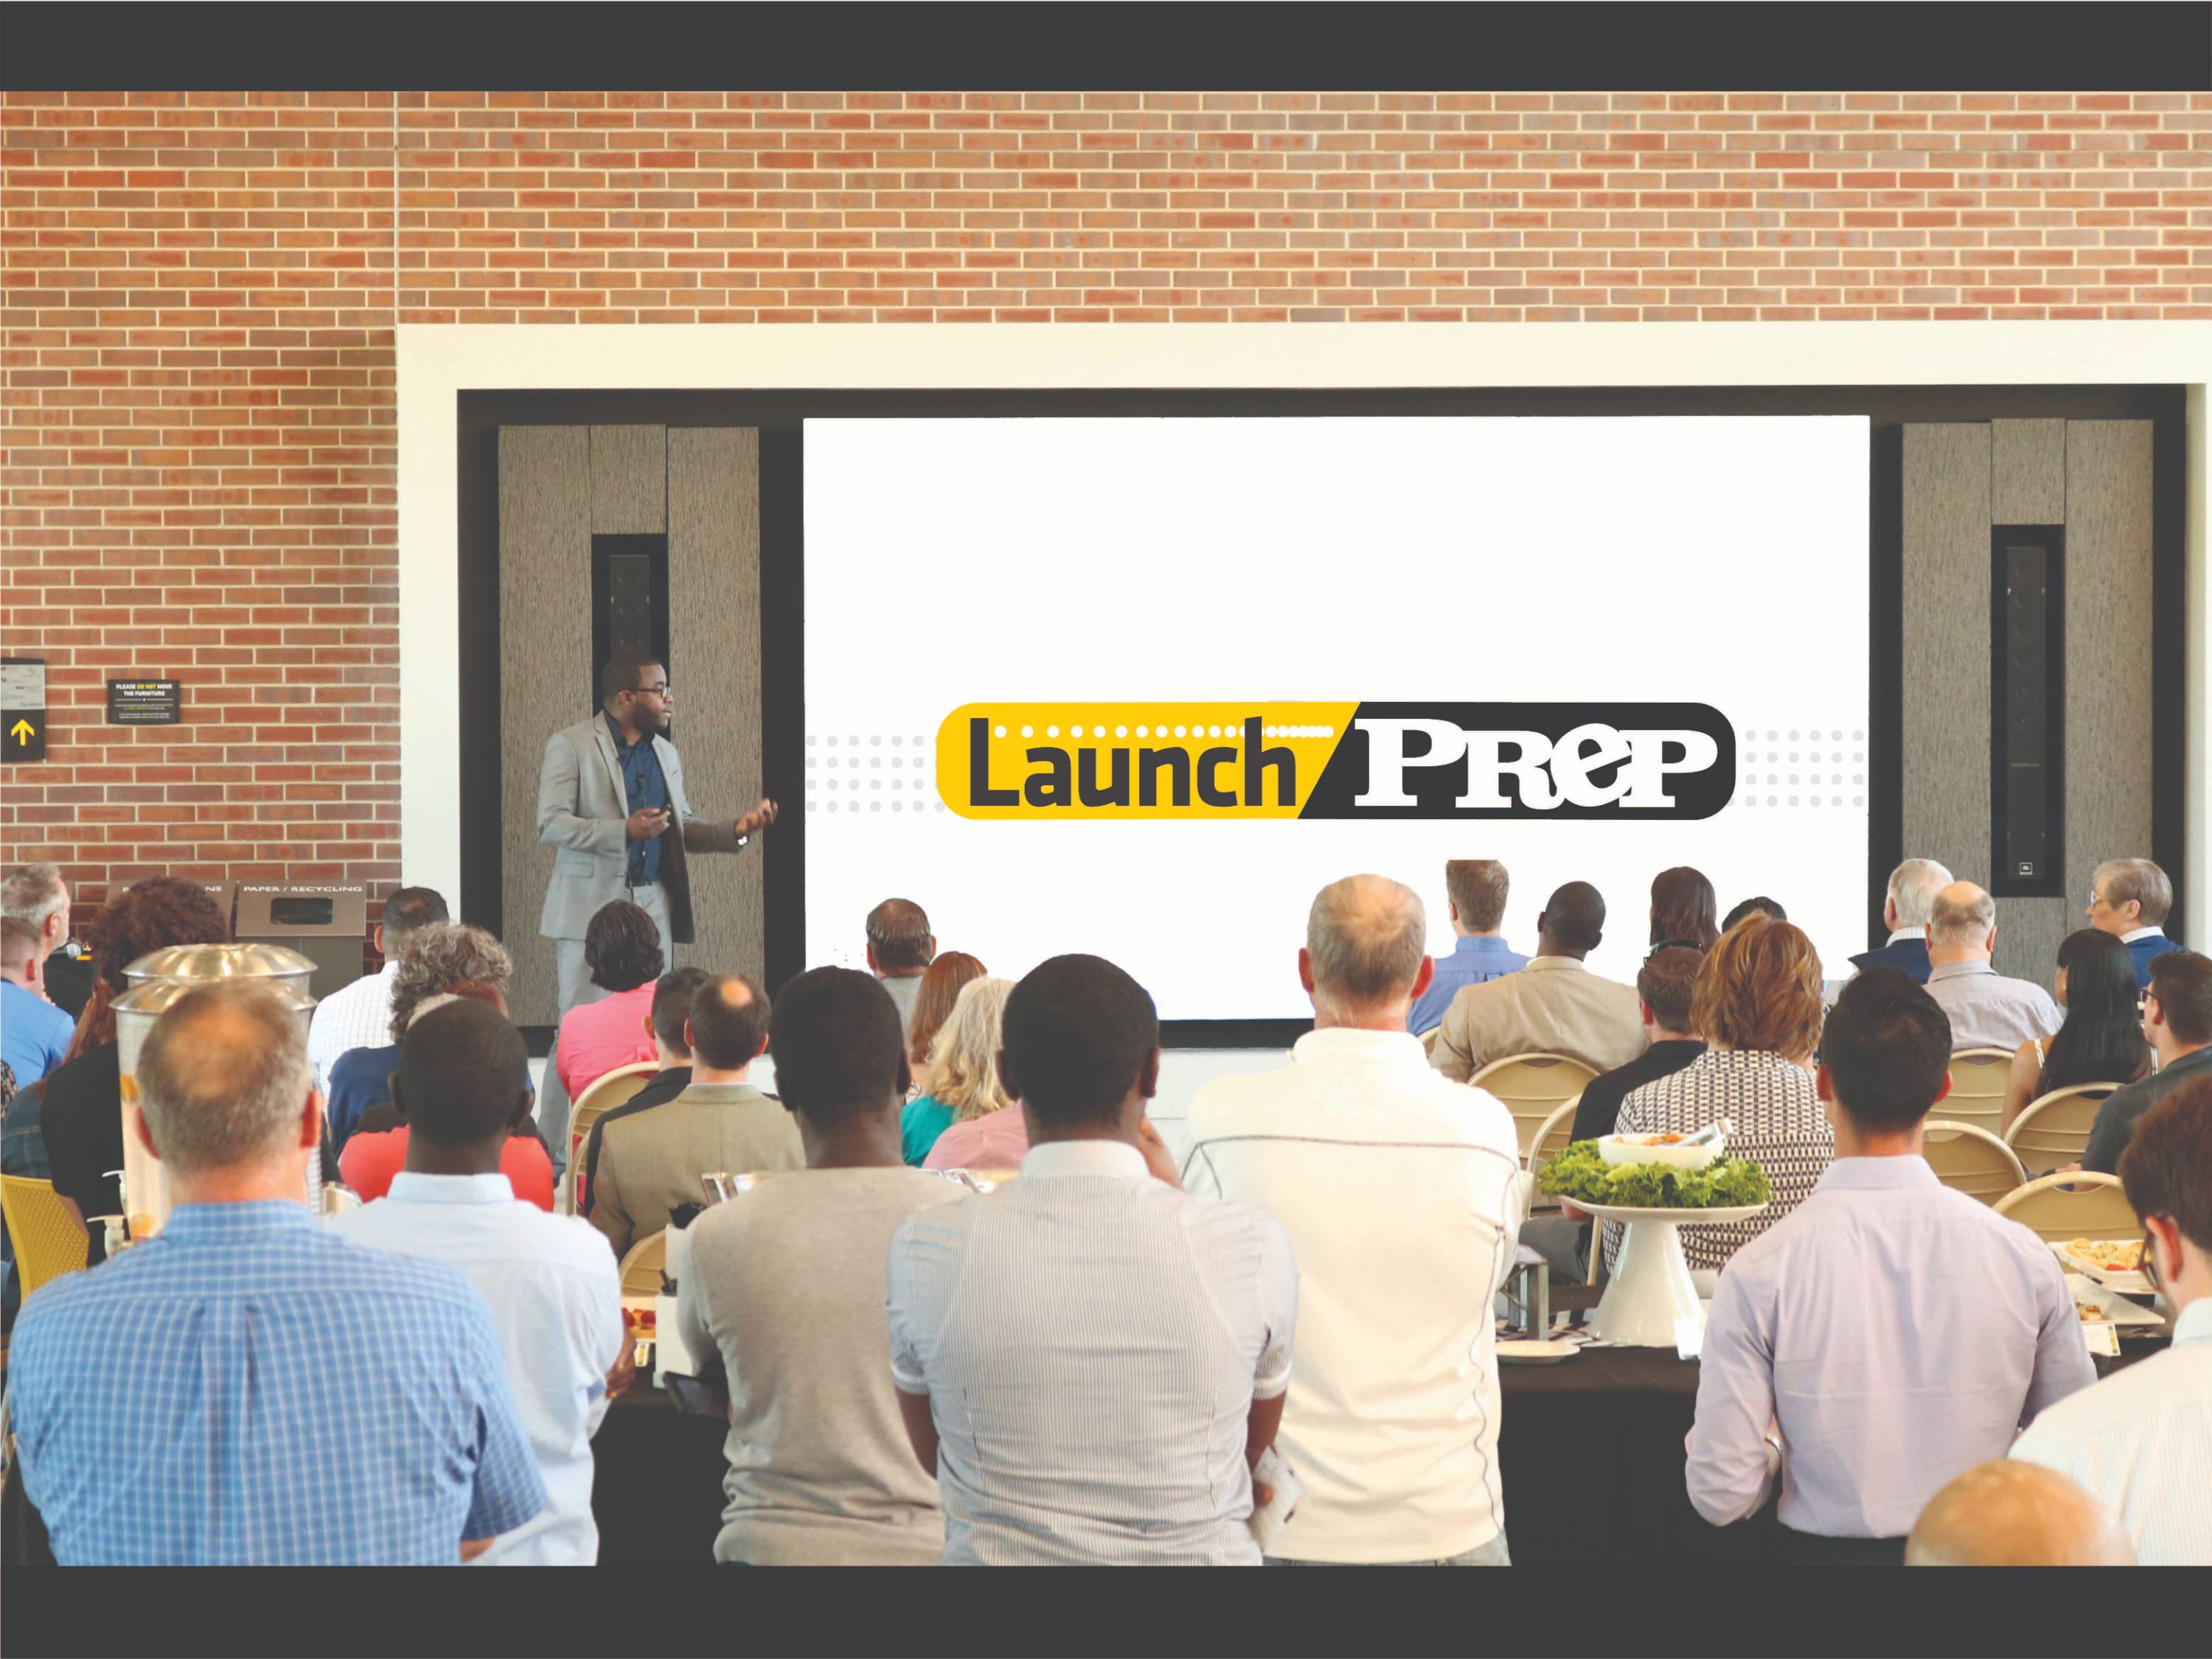 A man giving a presentation to an audience with launchprep logo.